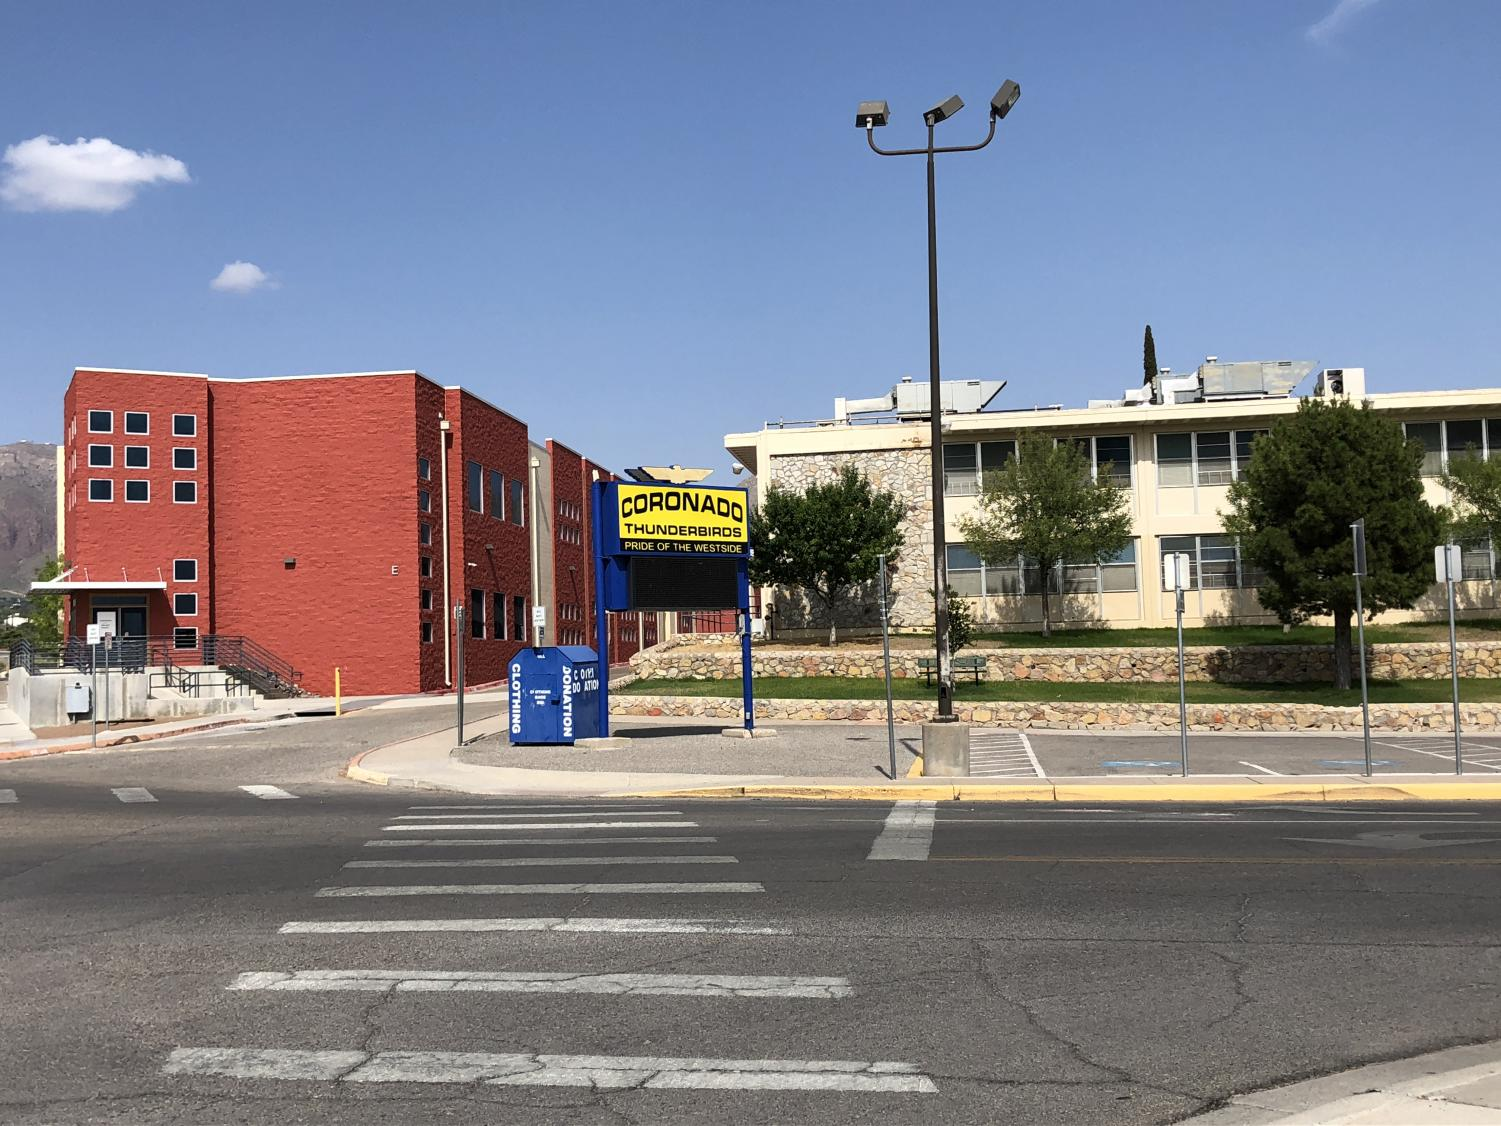 Coronado High School is now empty of students, but only until August 13.